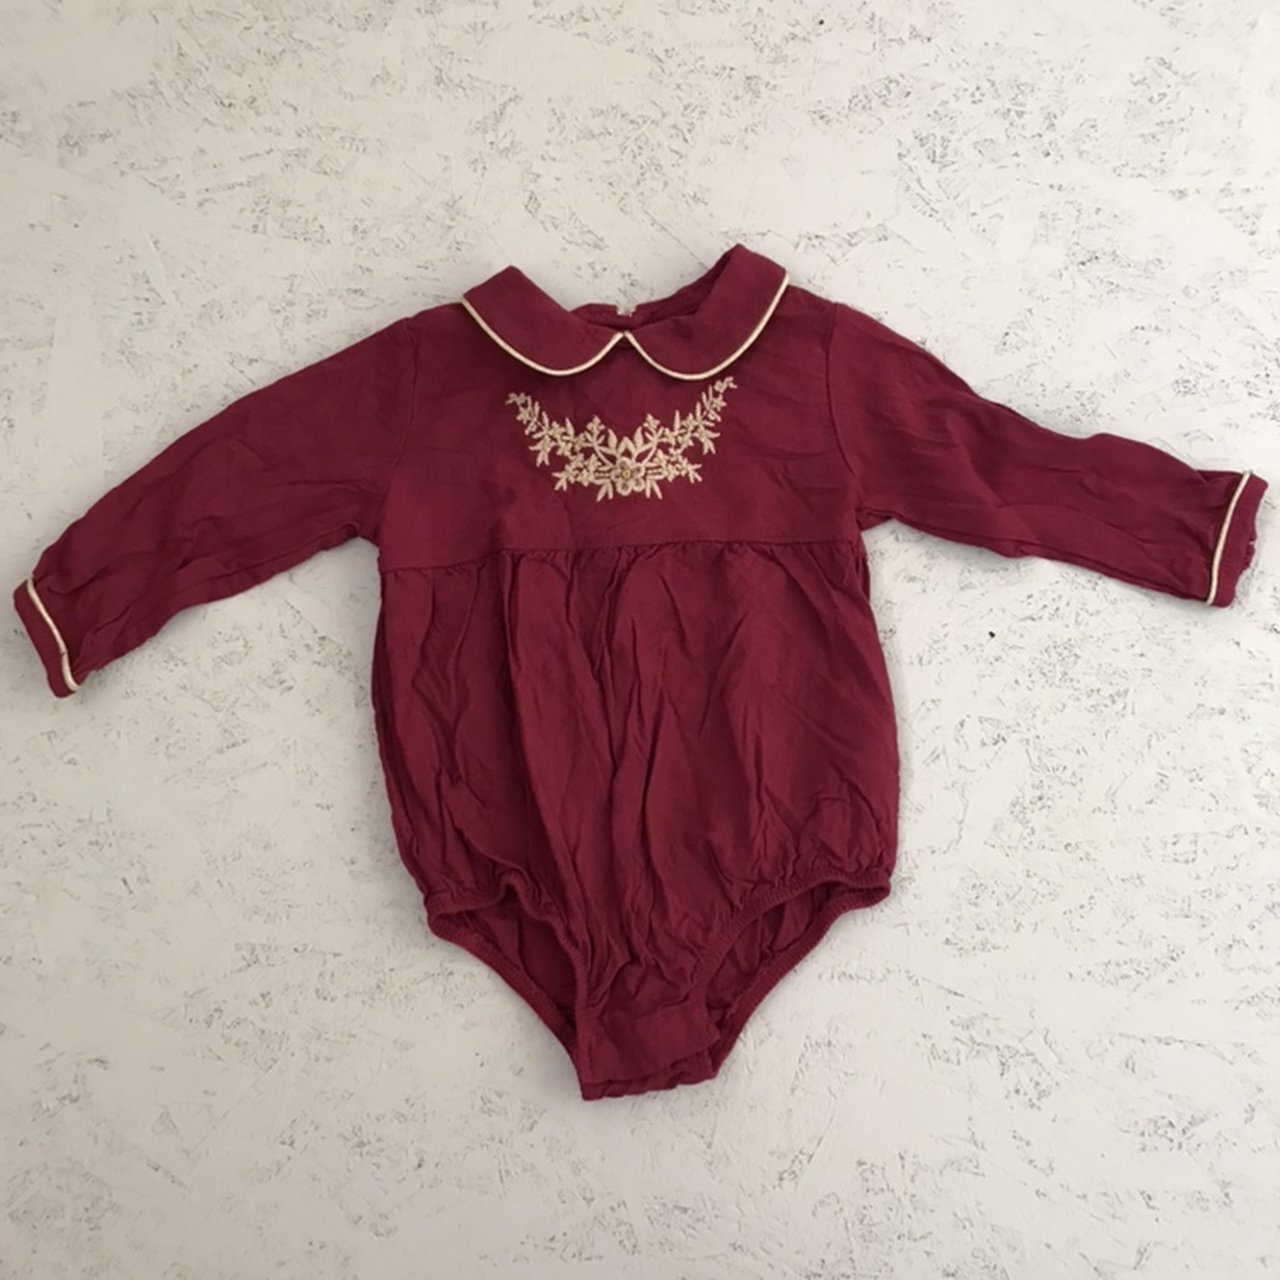 aa188e8feb88 Mamas and papas embroidered romper with Peter Pan collar - - - Depop